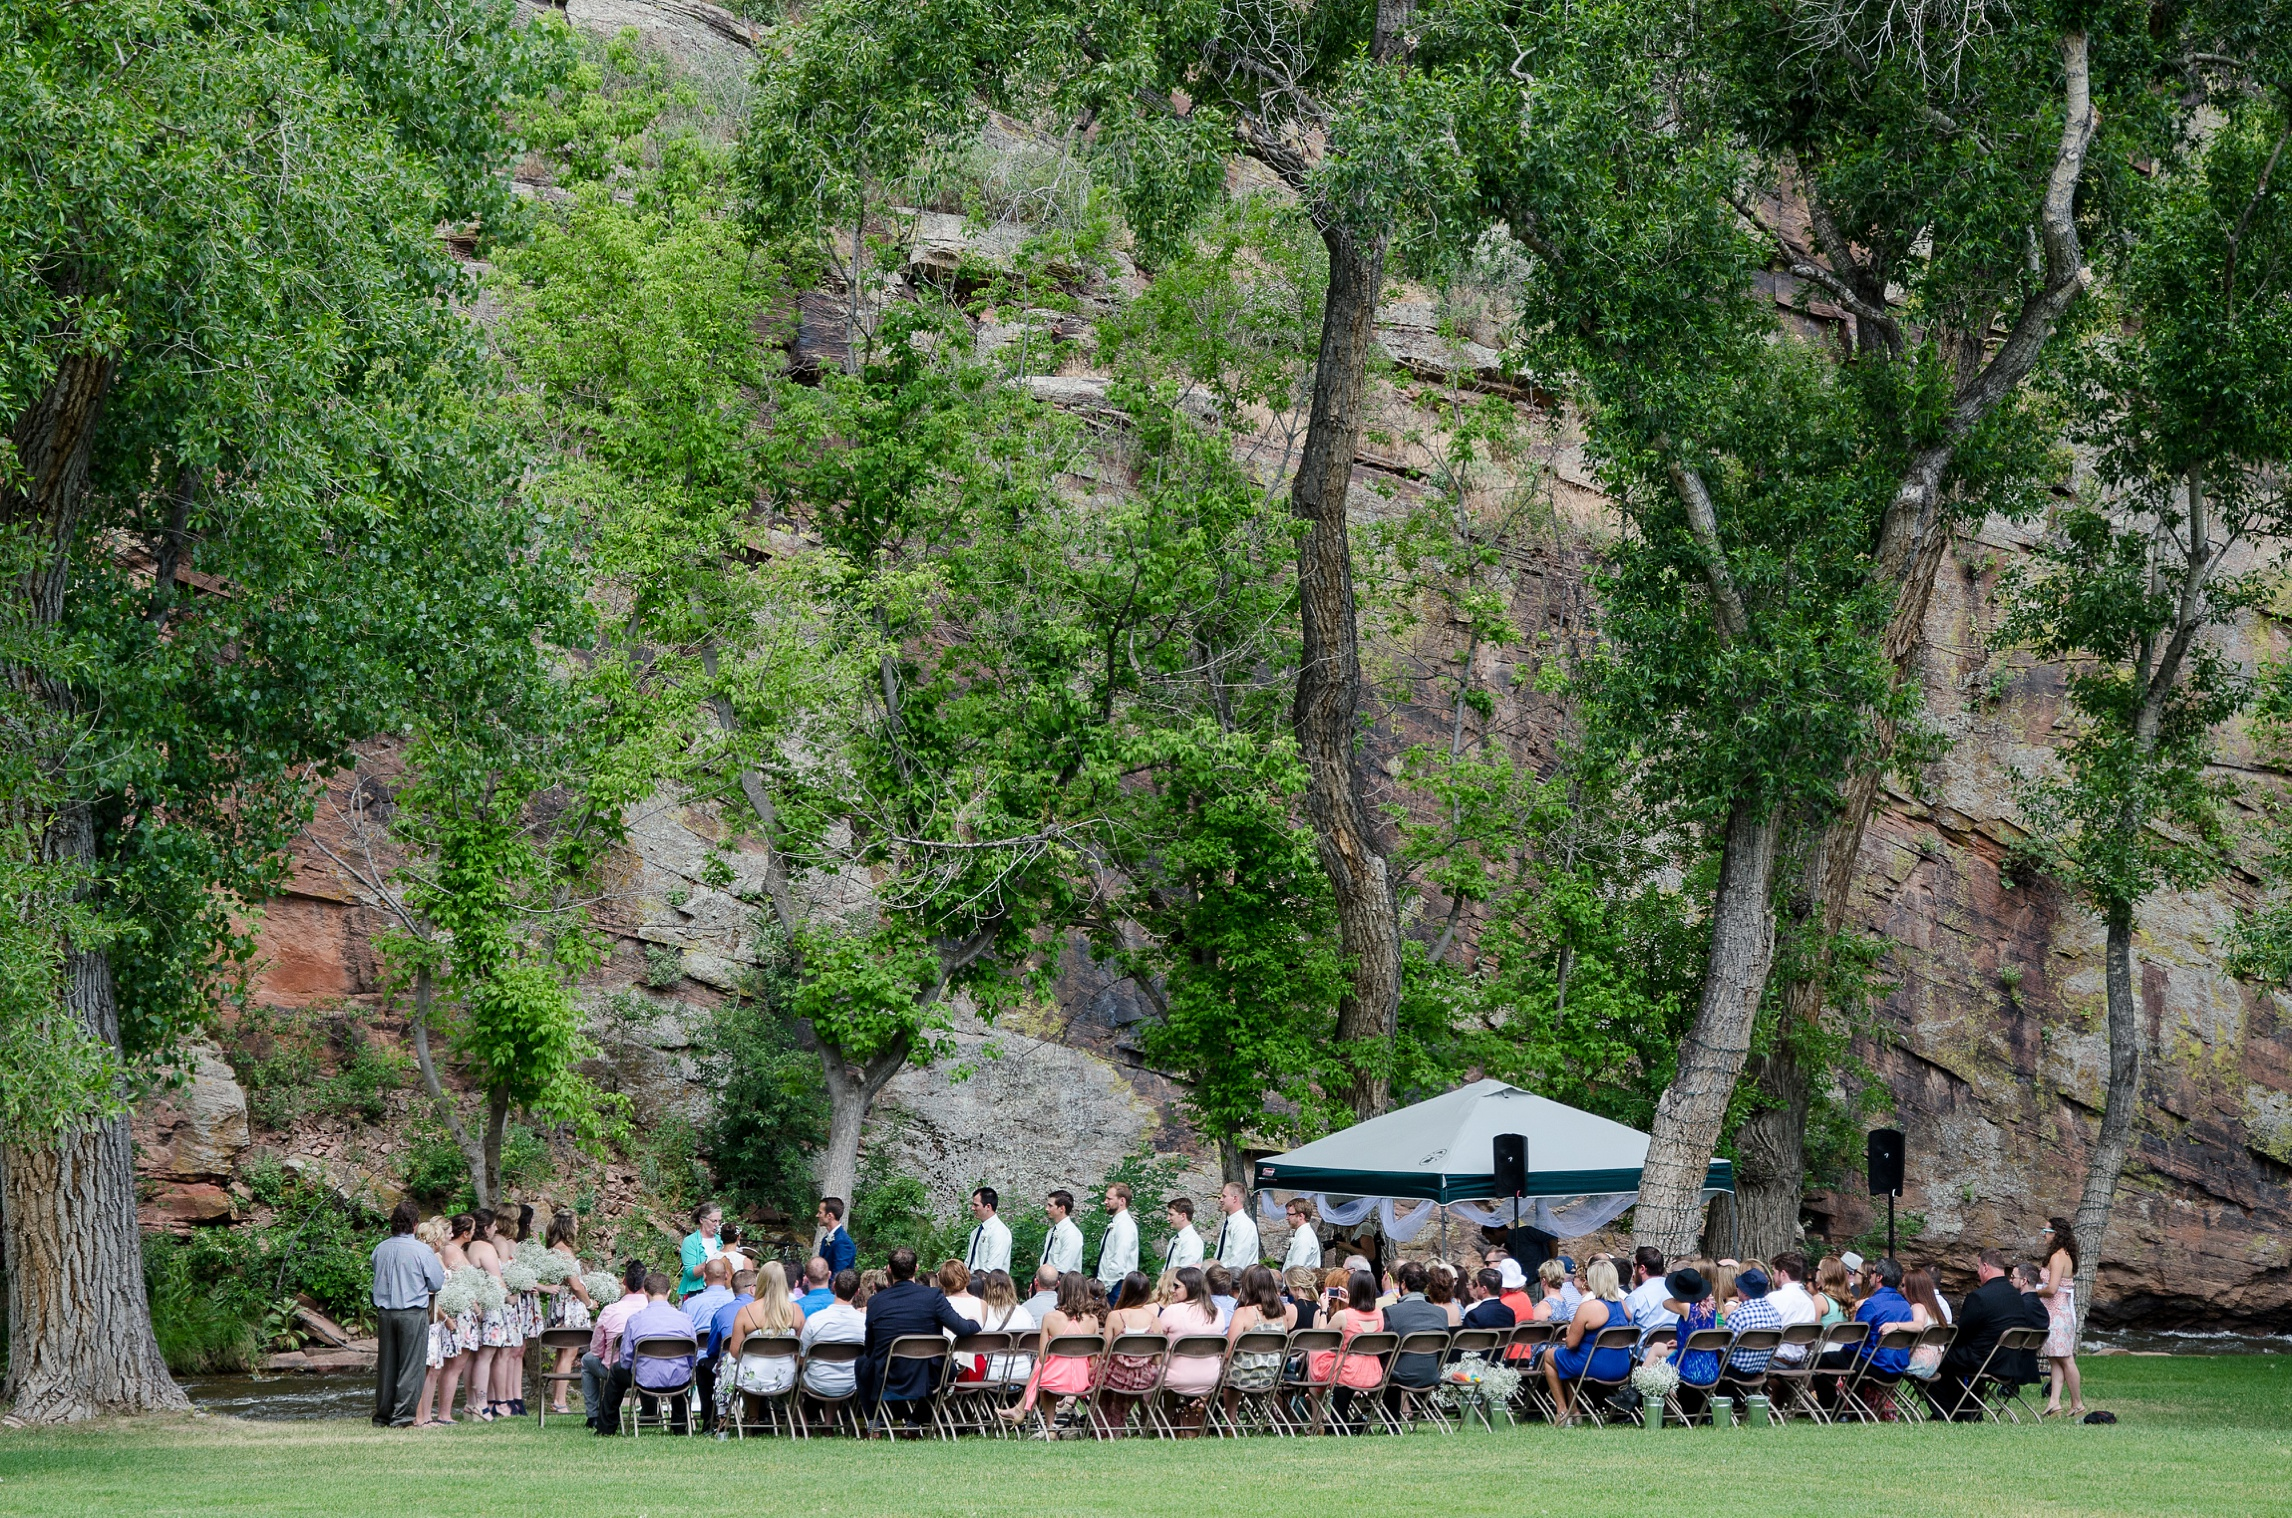 The wedding ceremony by the river at Planet Bluegrass in Lyons, Colorado. Wedding photography by Max Salzburg of Sonja K Photography.